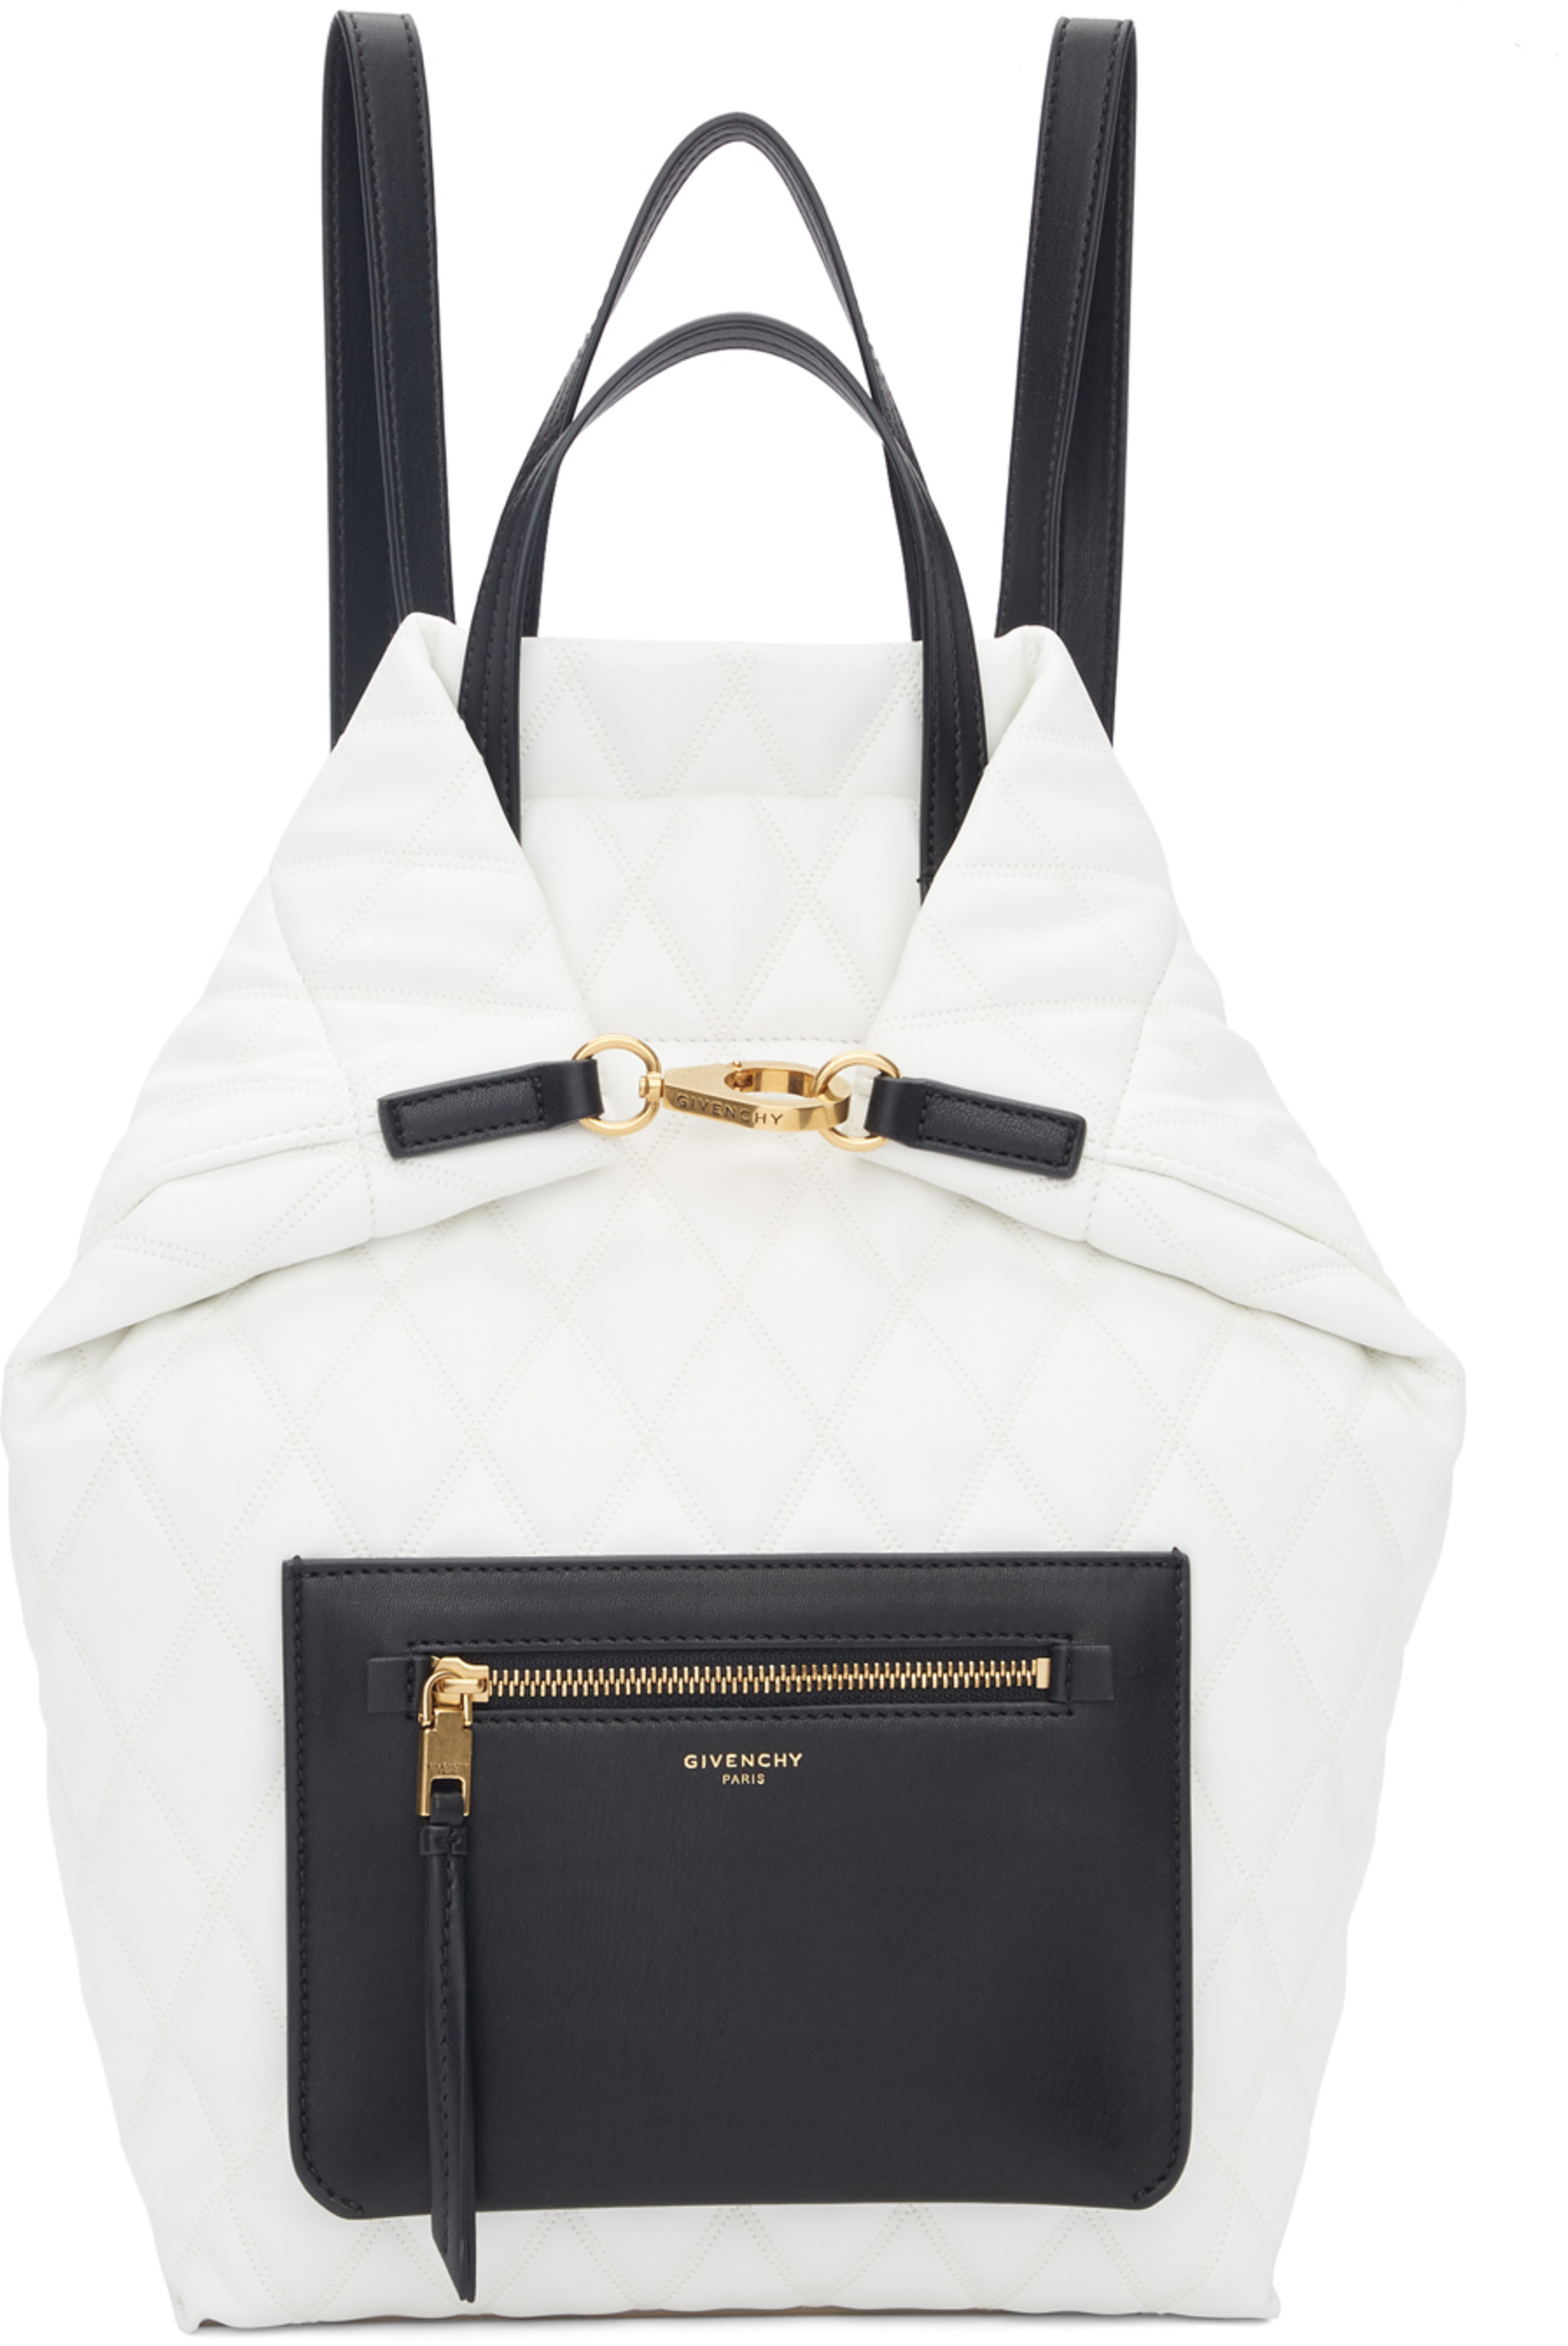 21ef7196fd81 Givenchy bags for Women